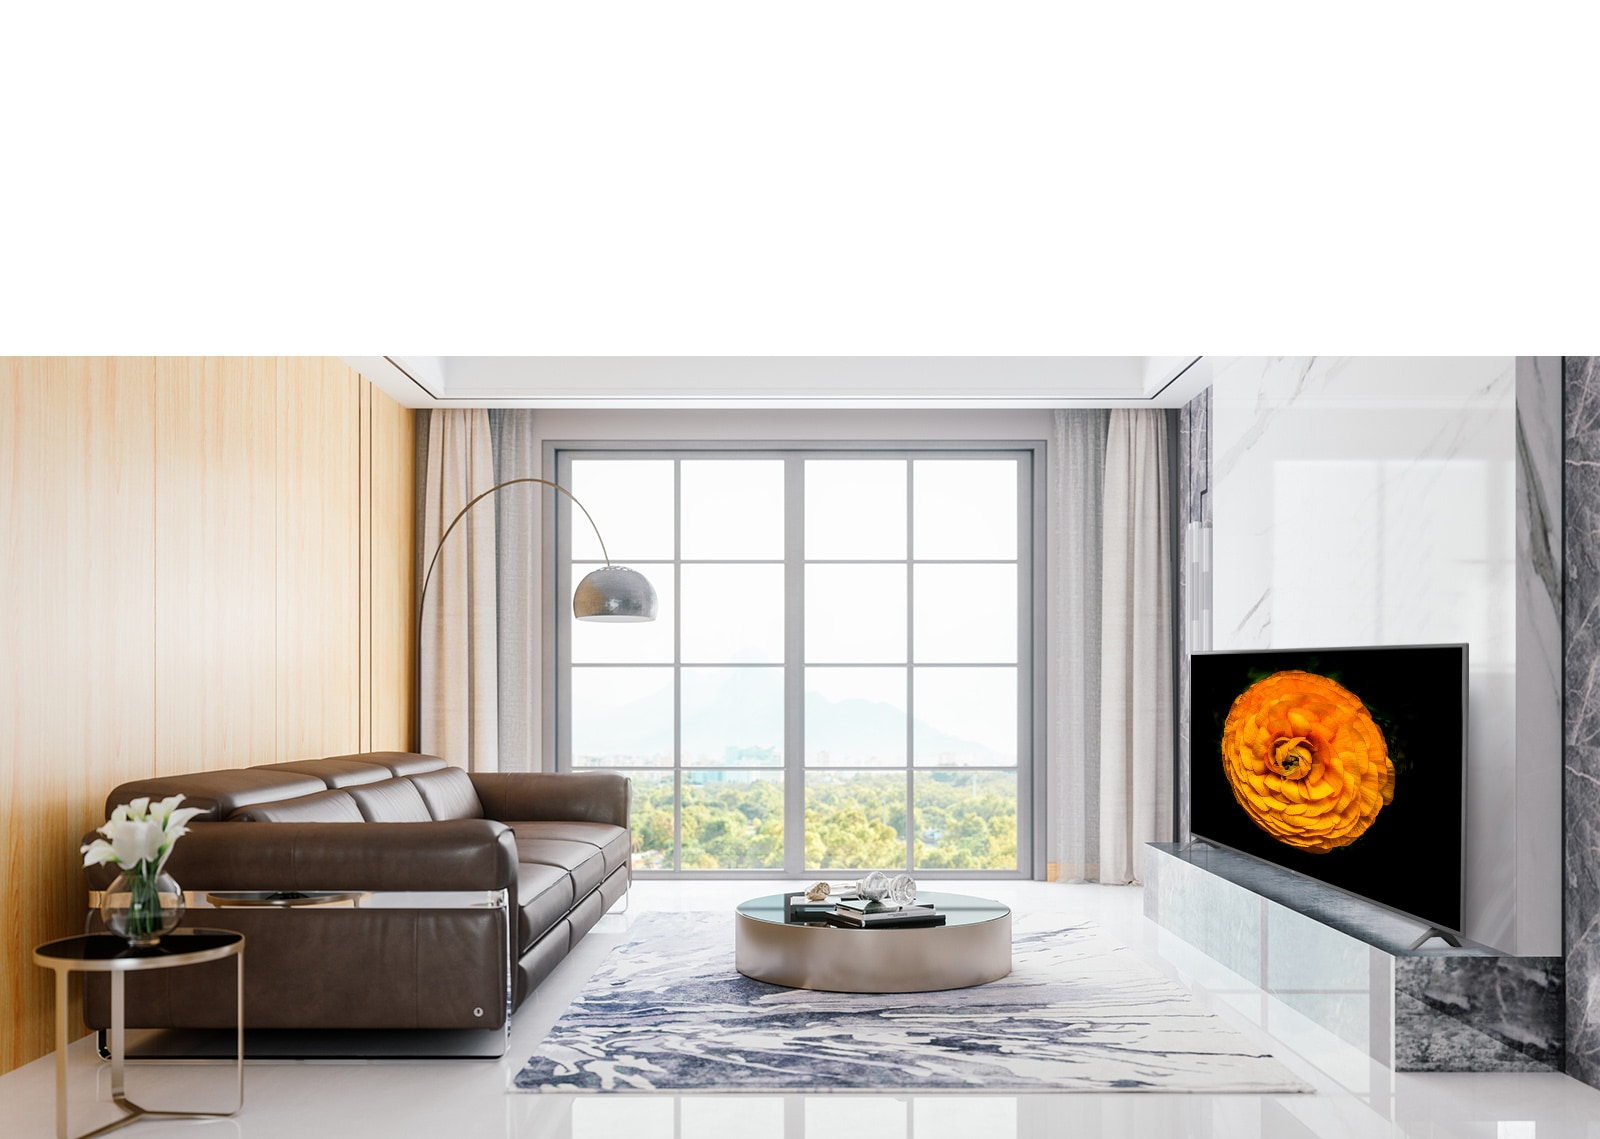 LG UHD TV, located on the wall in a living room with the minimal interior. Image of a flower is shown on the TV screen.